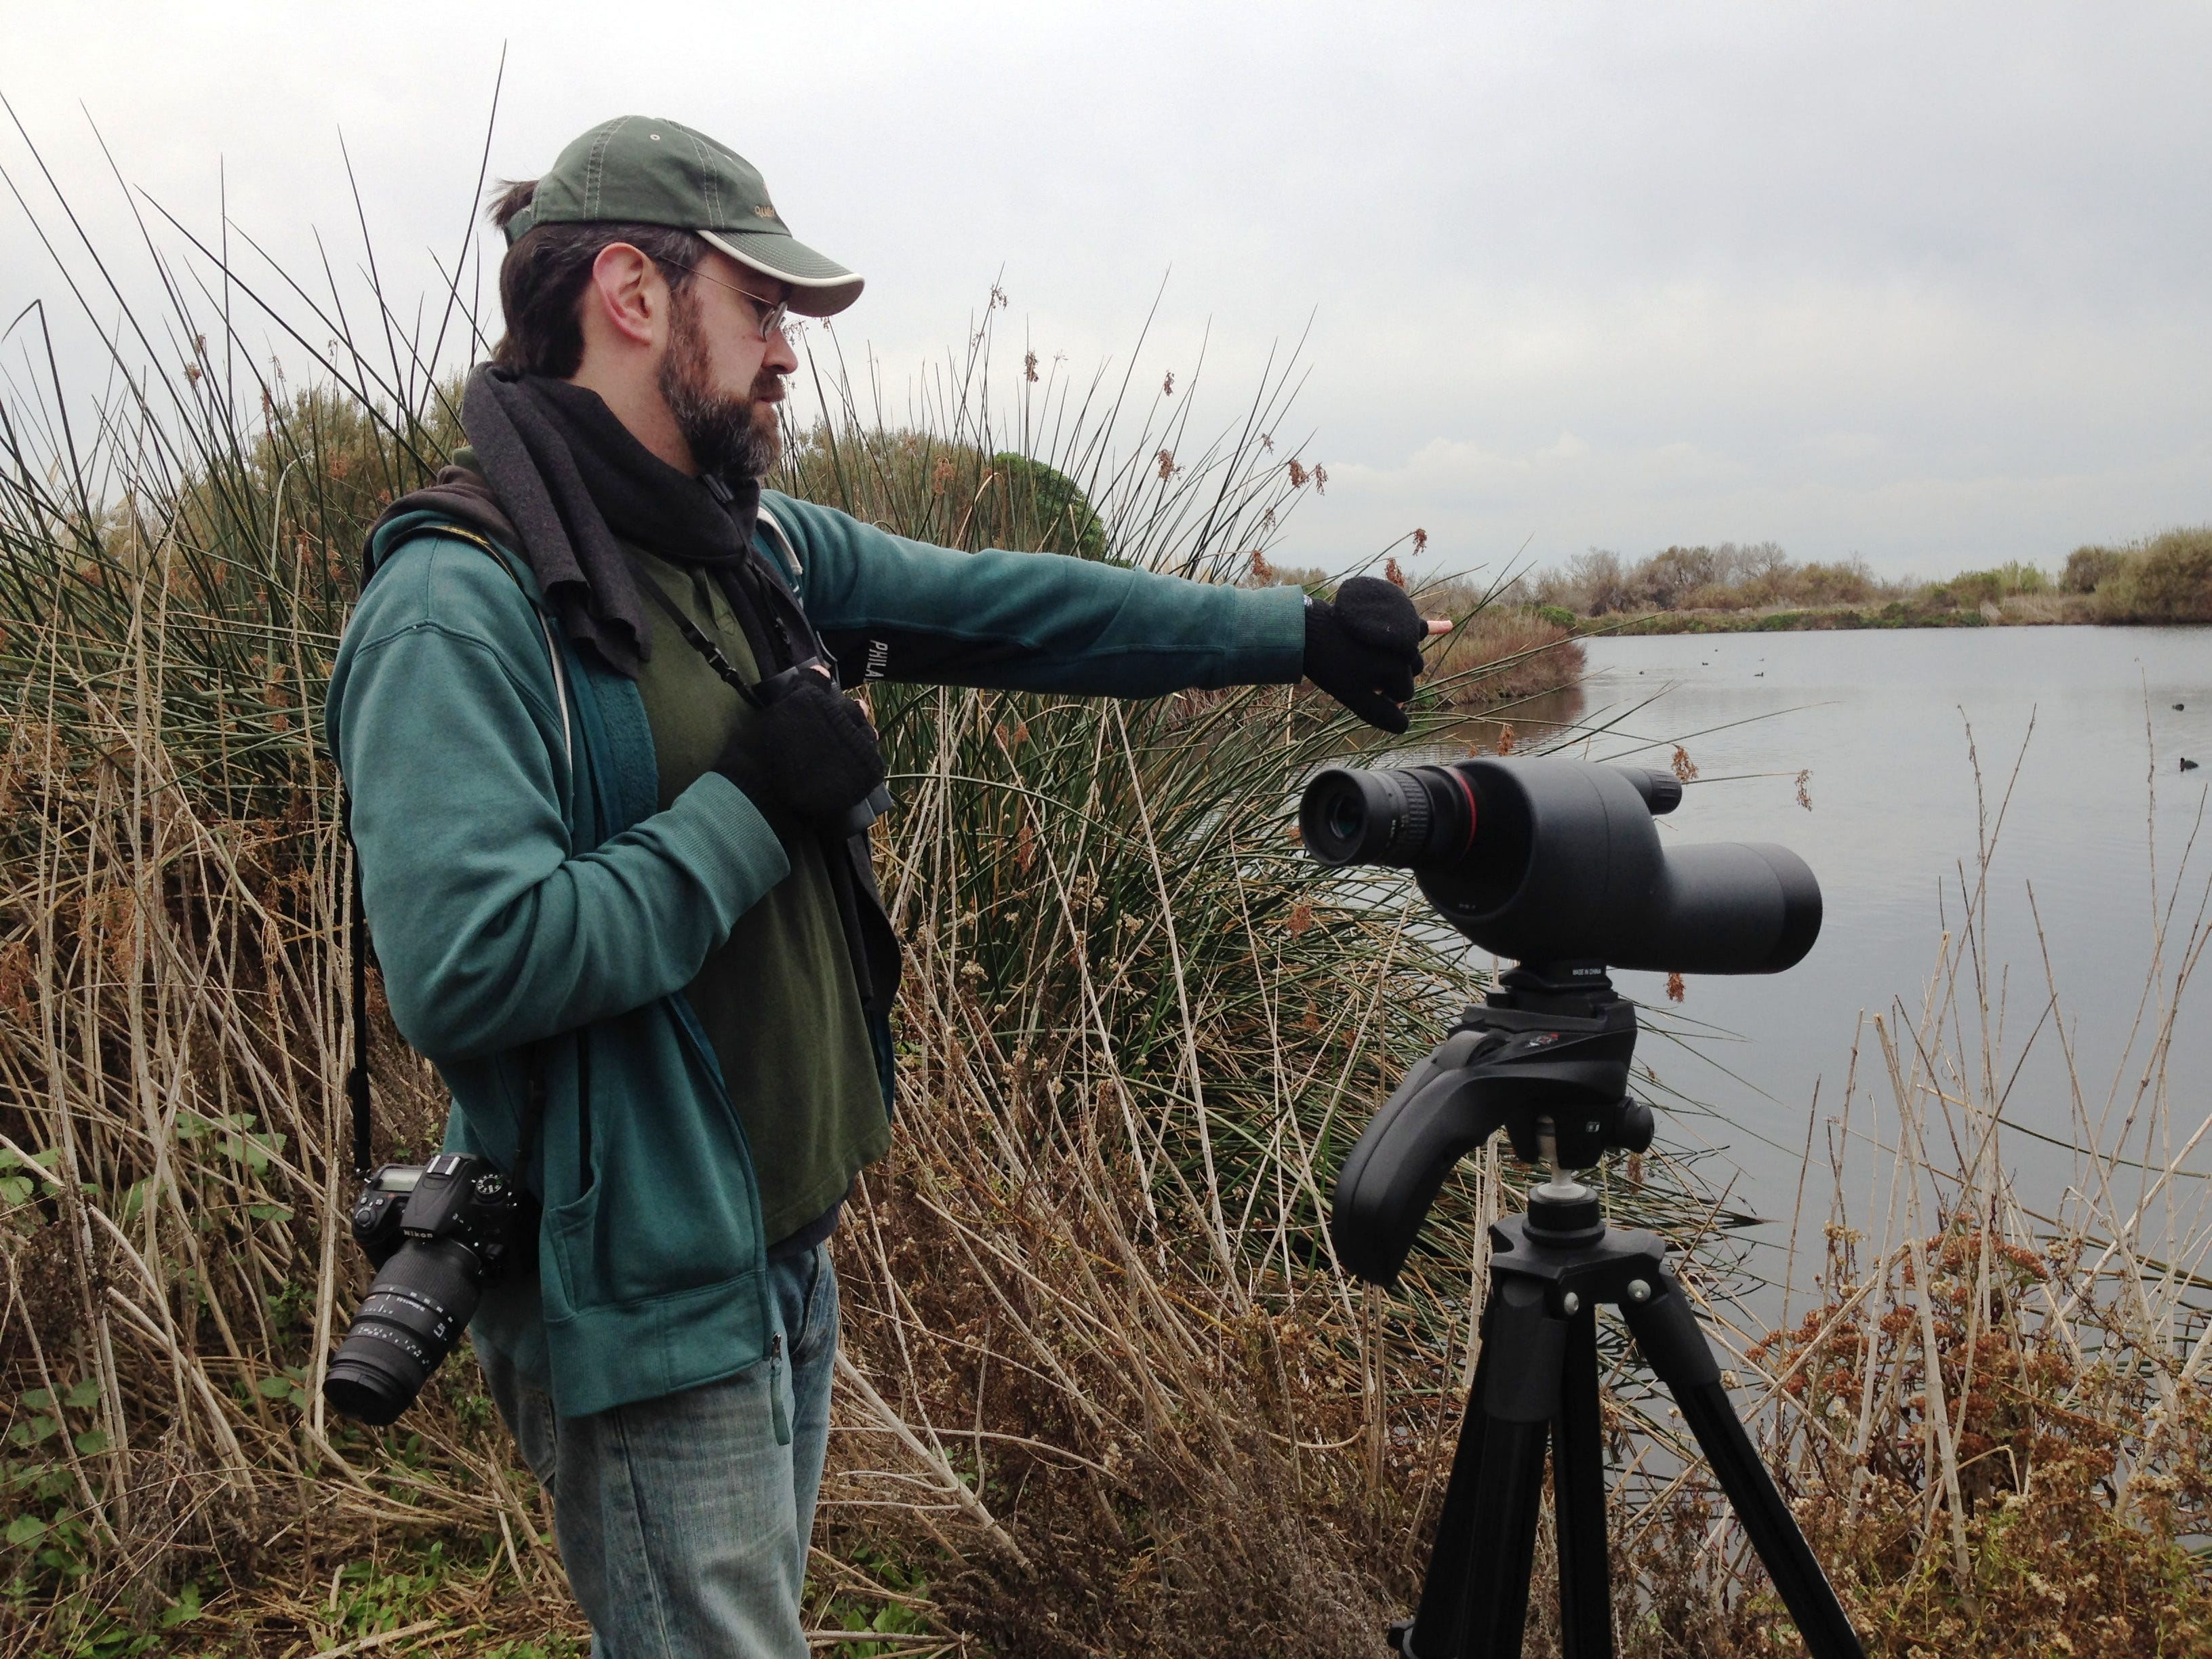 Frank DeMartino, organizer of the Christmas Bird Count in Ventura, points to ducks at the Ventura settling ponds. Last year's local count recorded 175 species and more than 23,000 individual birds.